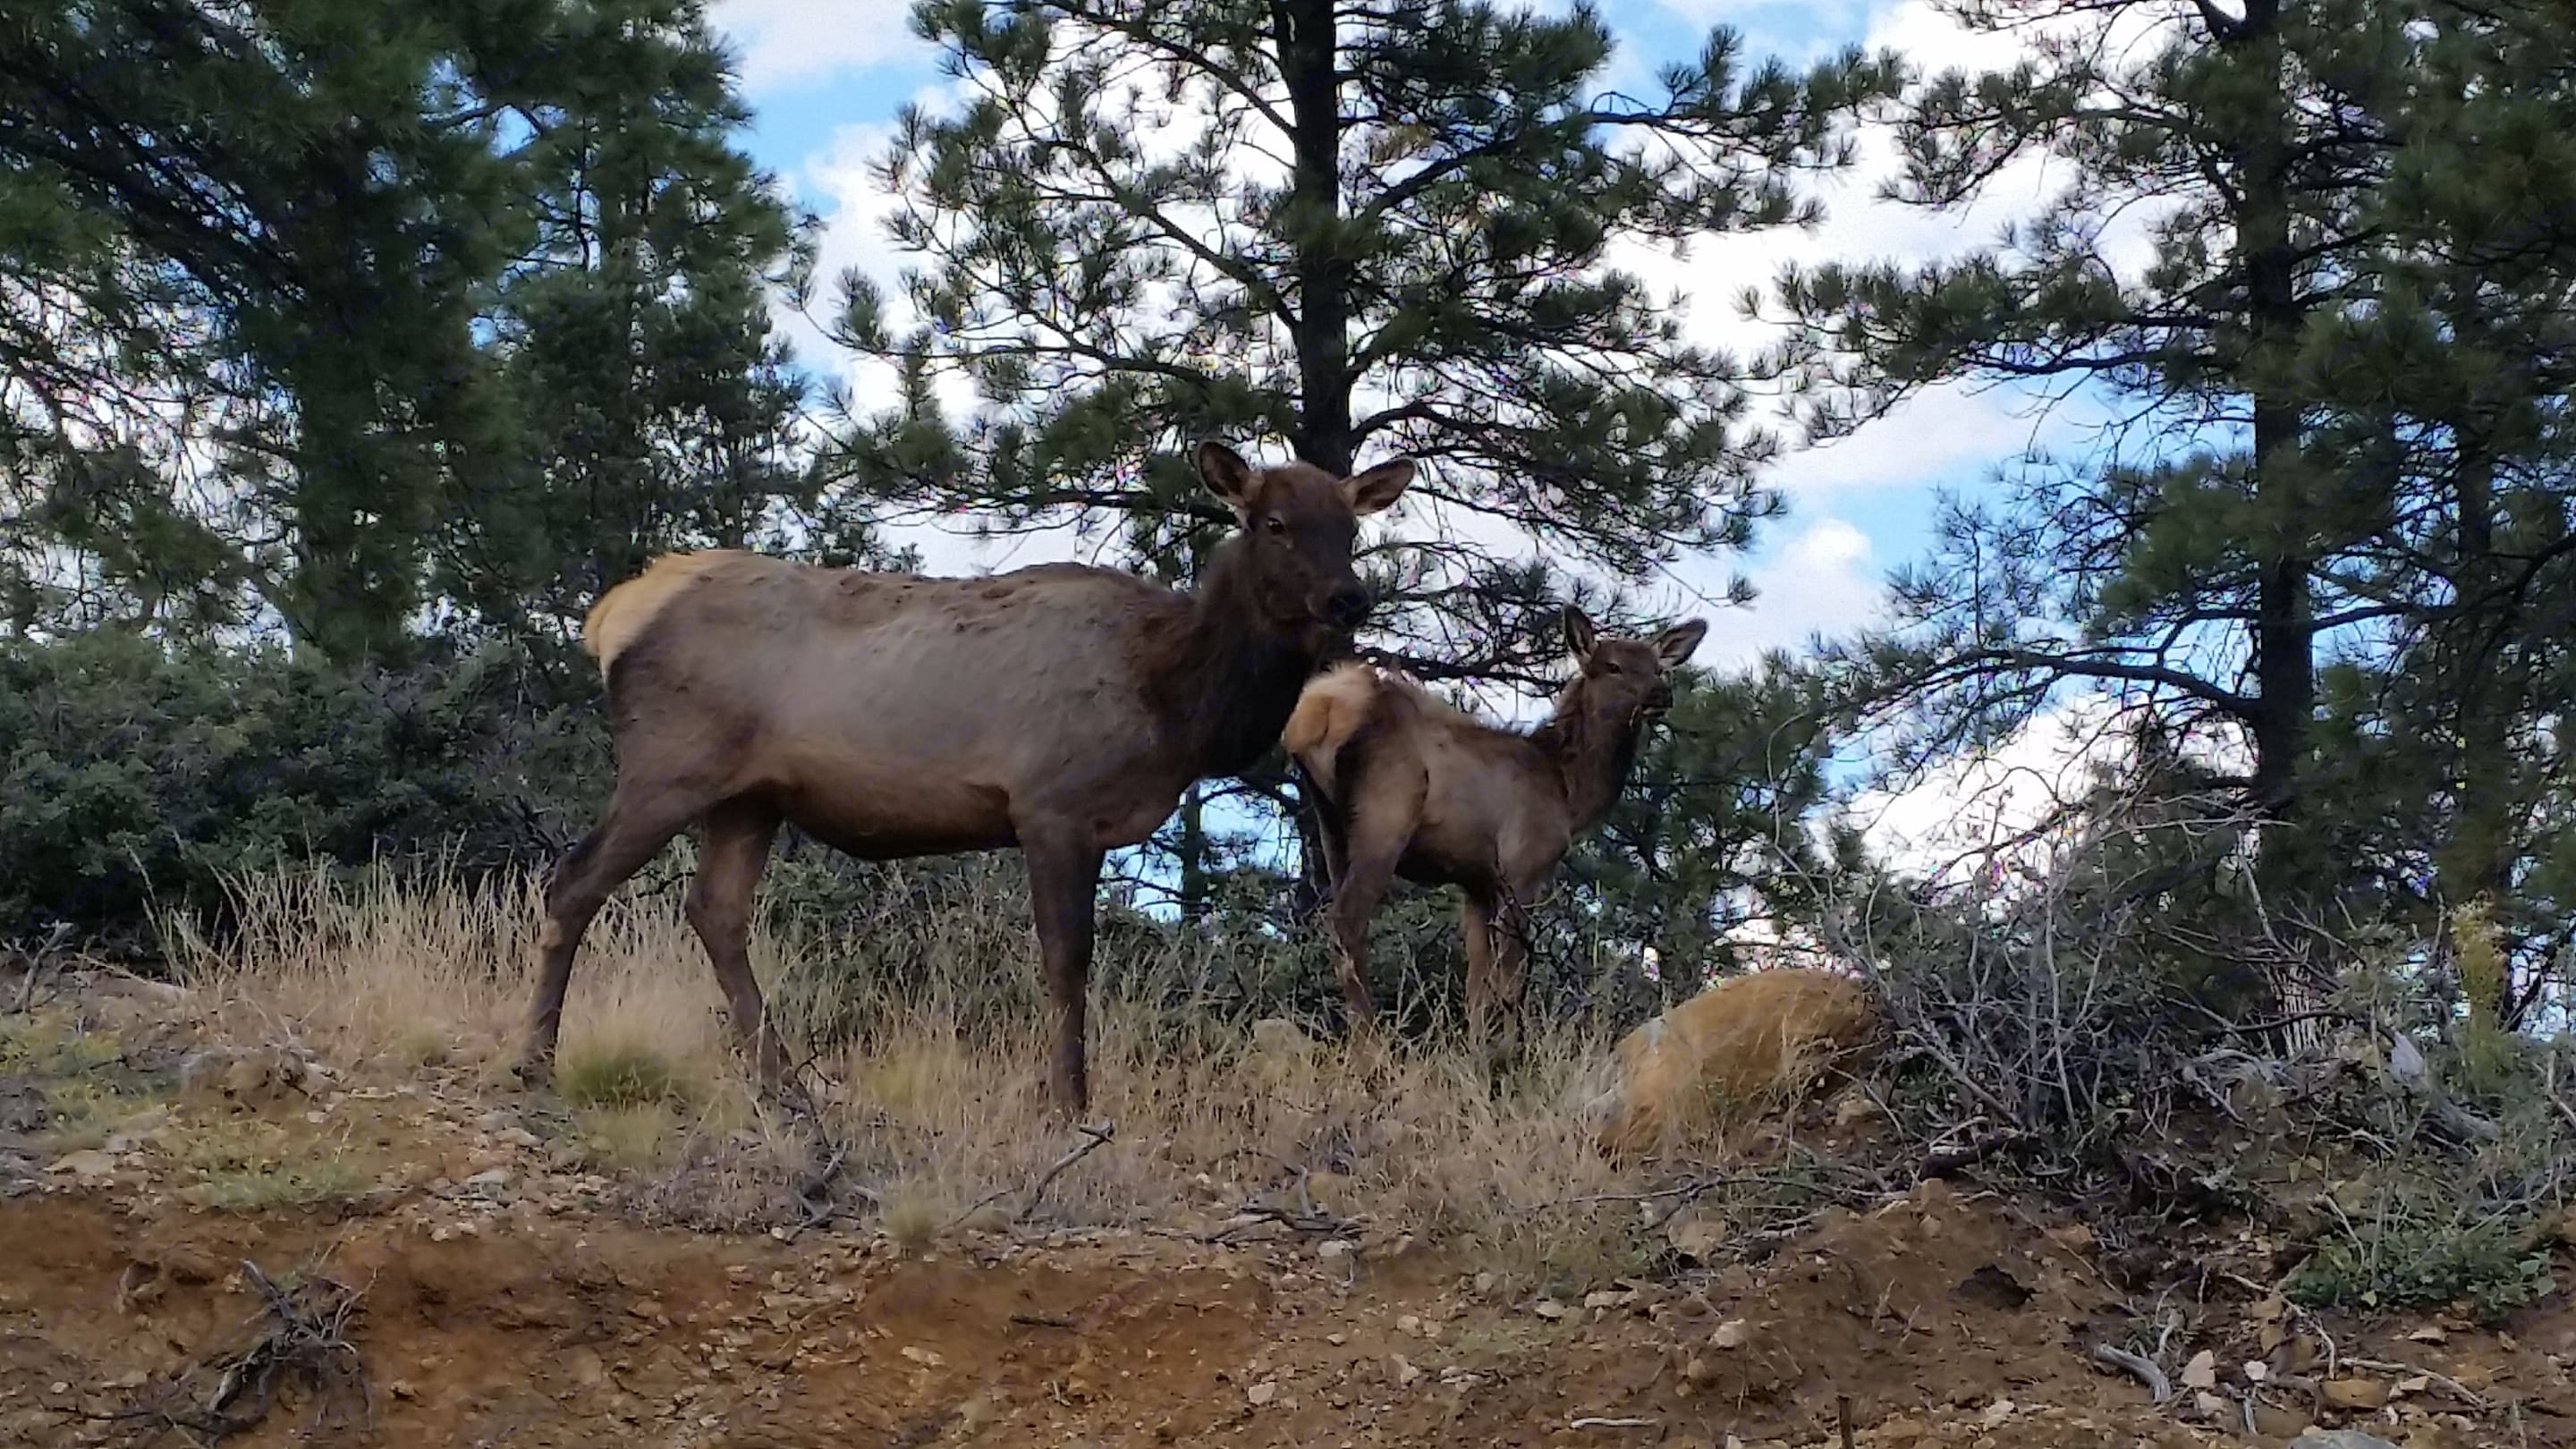 spotted some elk on our hike!. Dutchmen Aspen Trail 2018